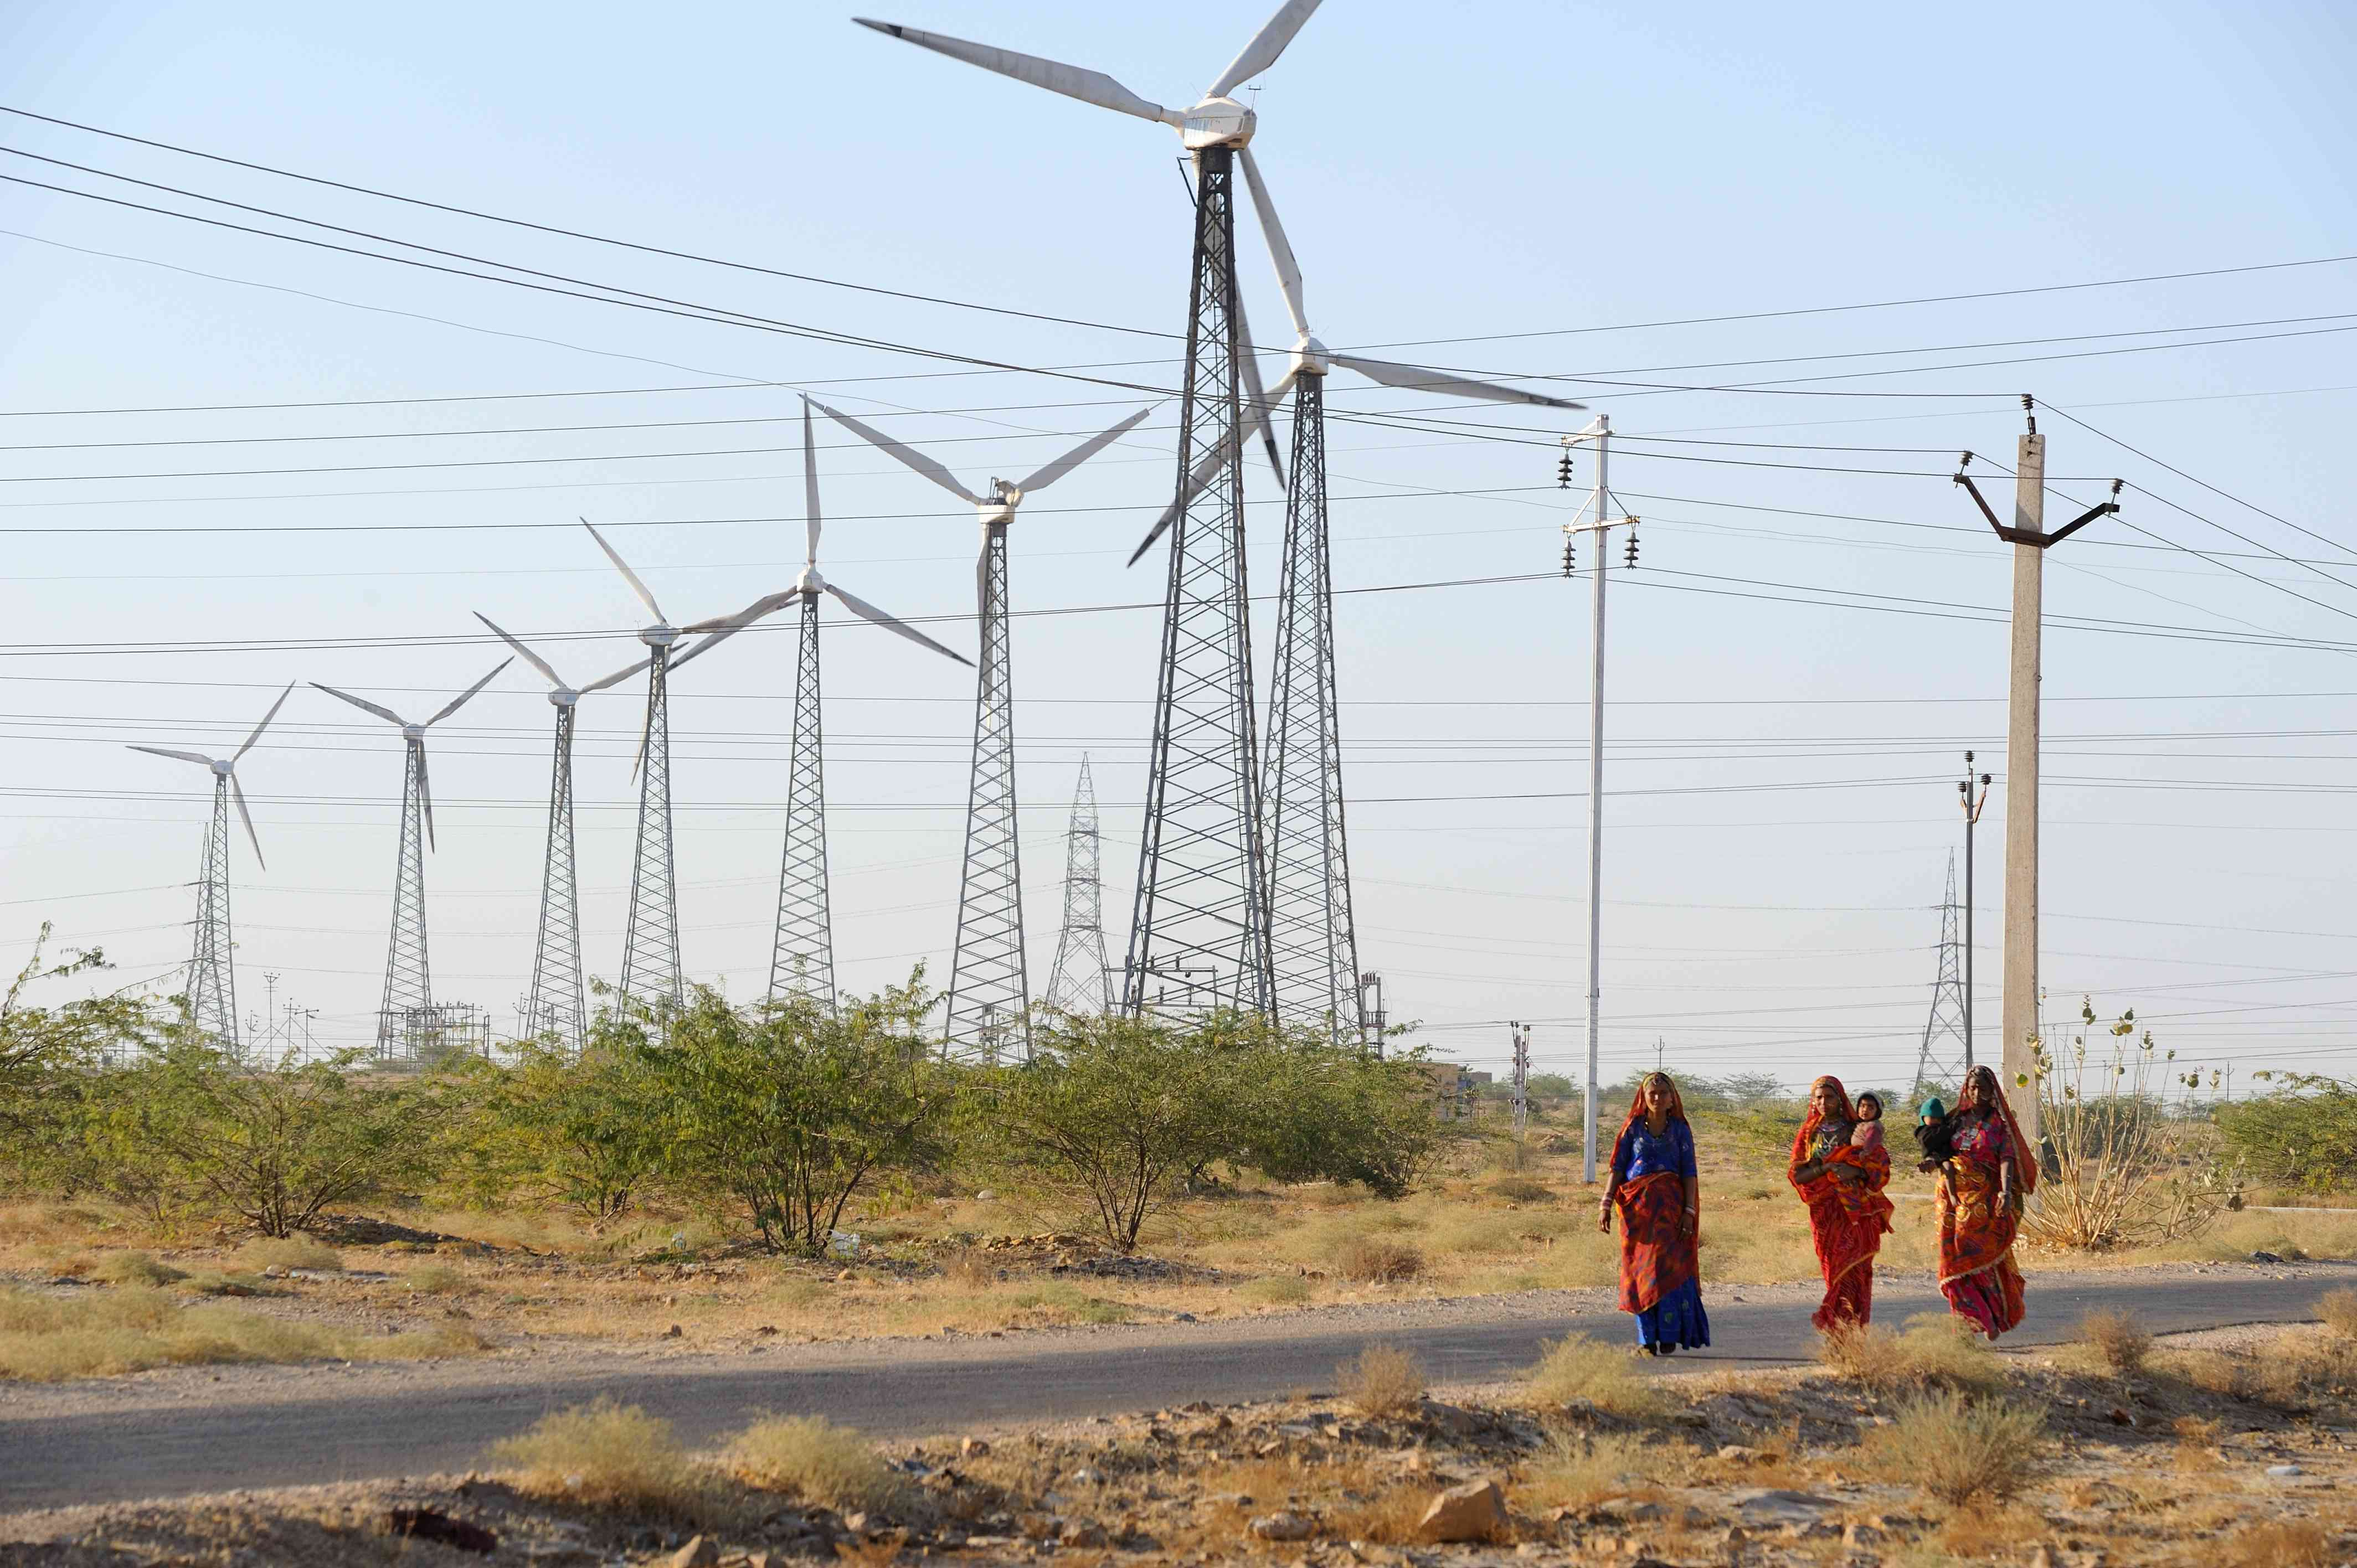 Young women walk in front of windmills in India's Jaisalmer region in Rajasthan.